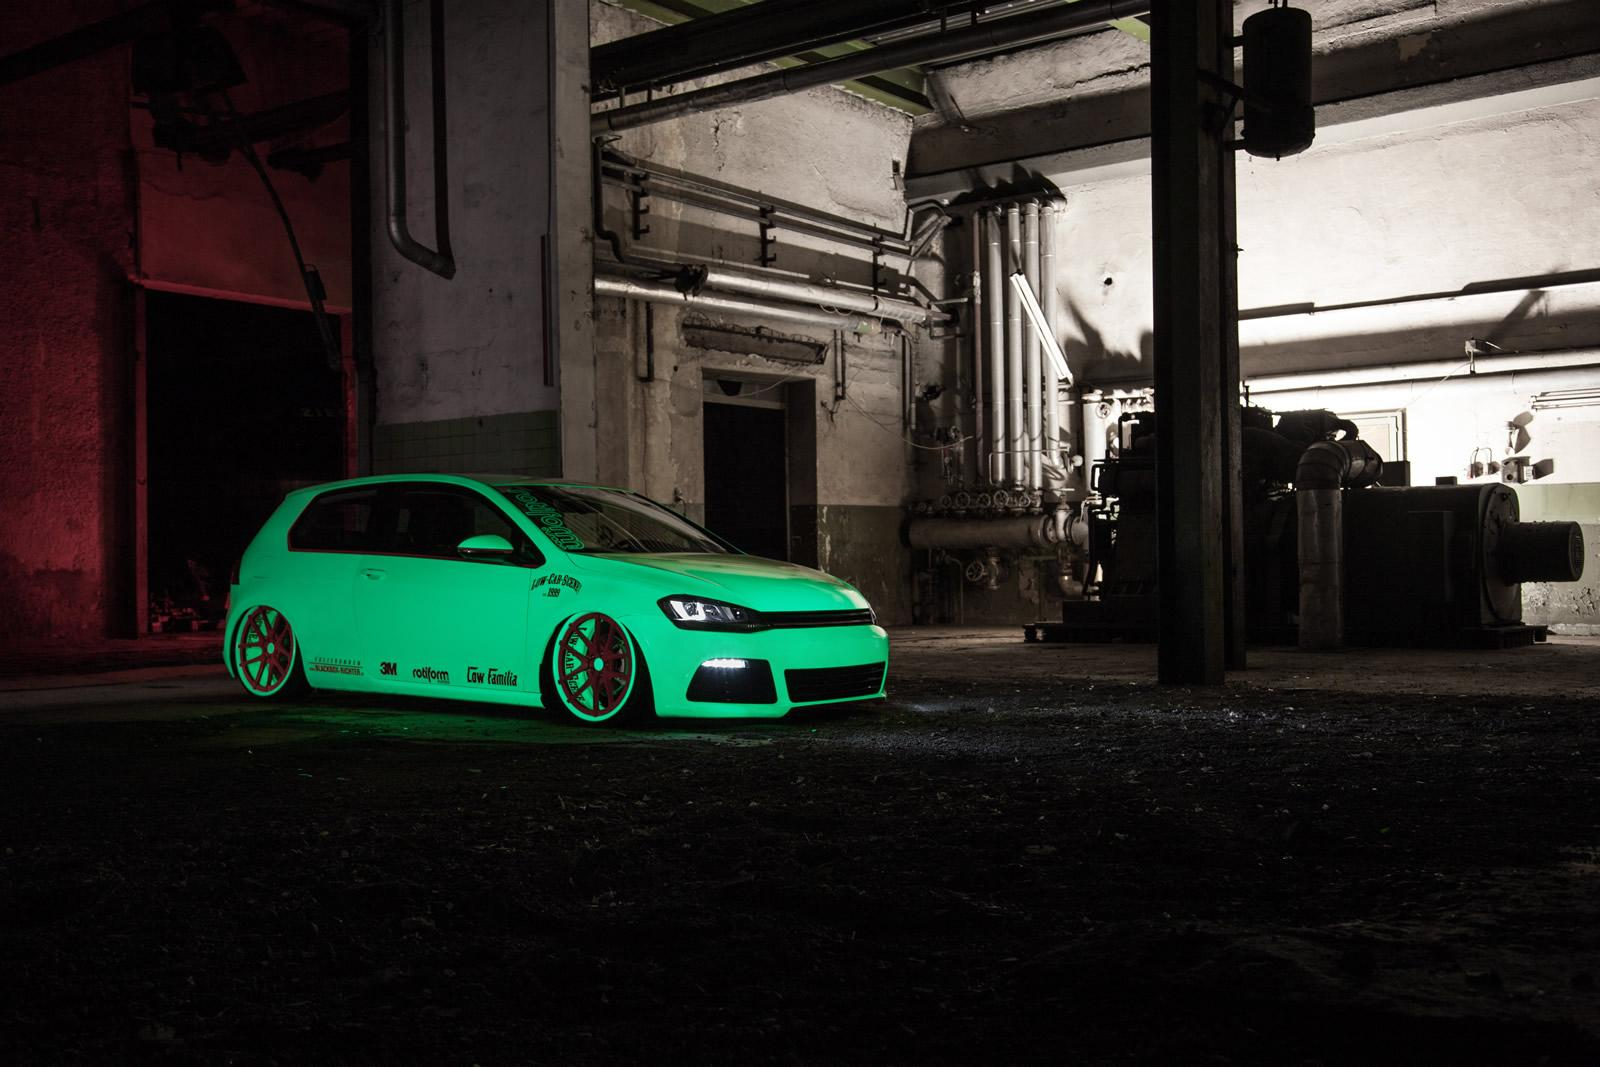 Volkswagen Golf Vii Gets Light Tron Treatment Video Photo Gallery on Car Engine As Well Audi 4 Cylinder On